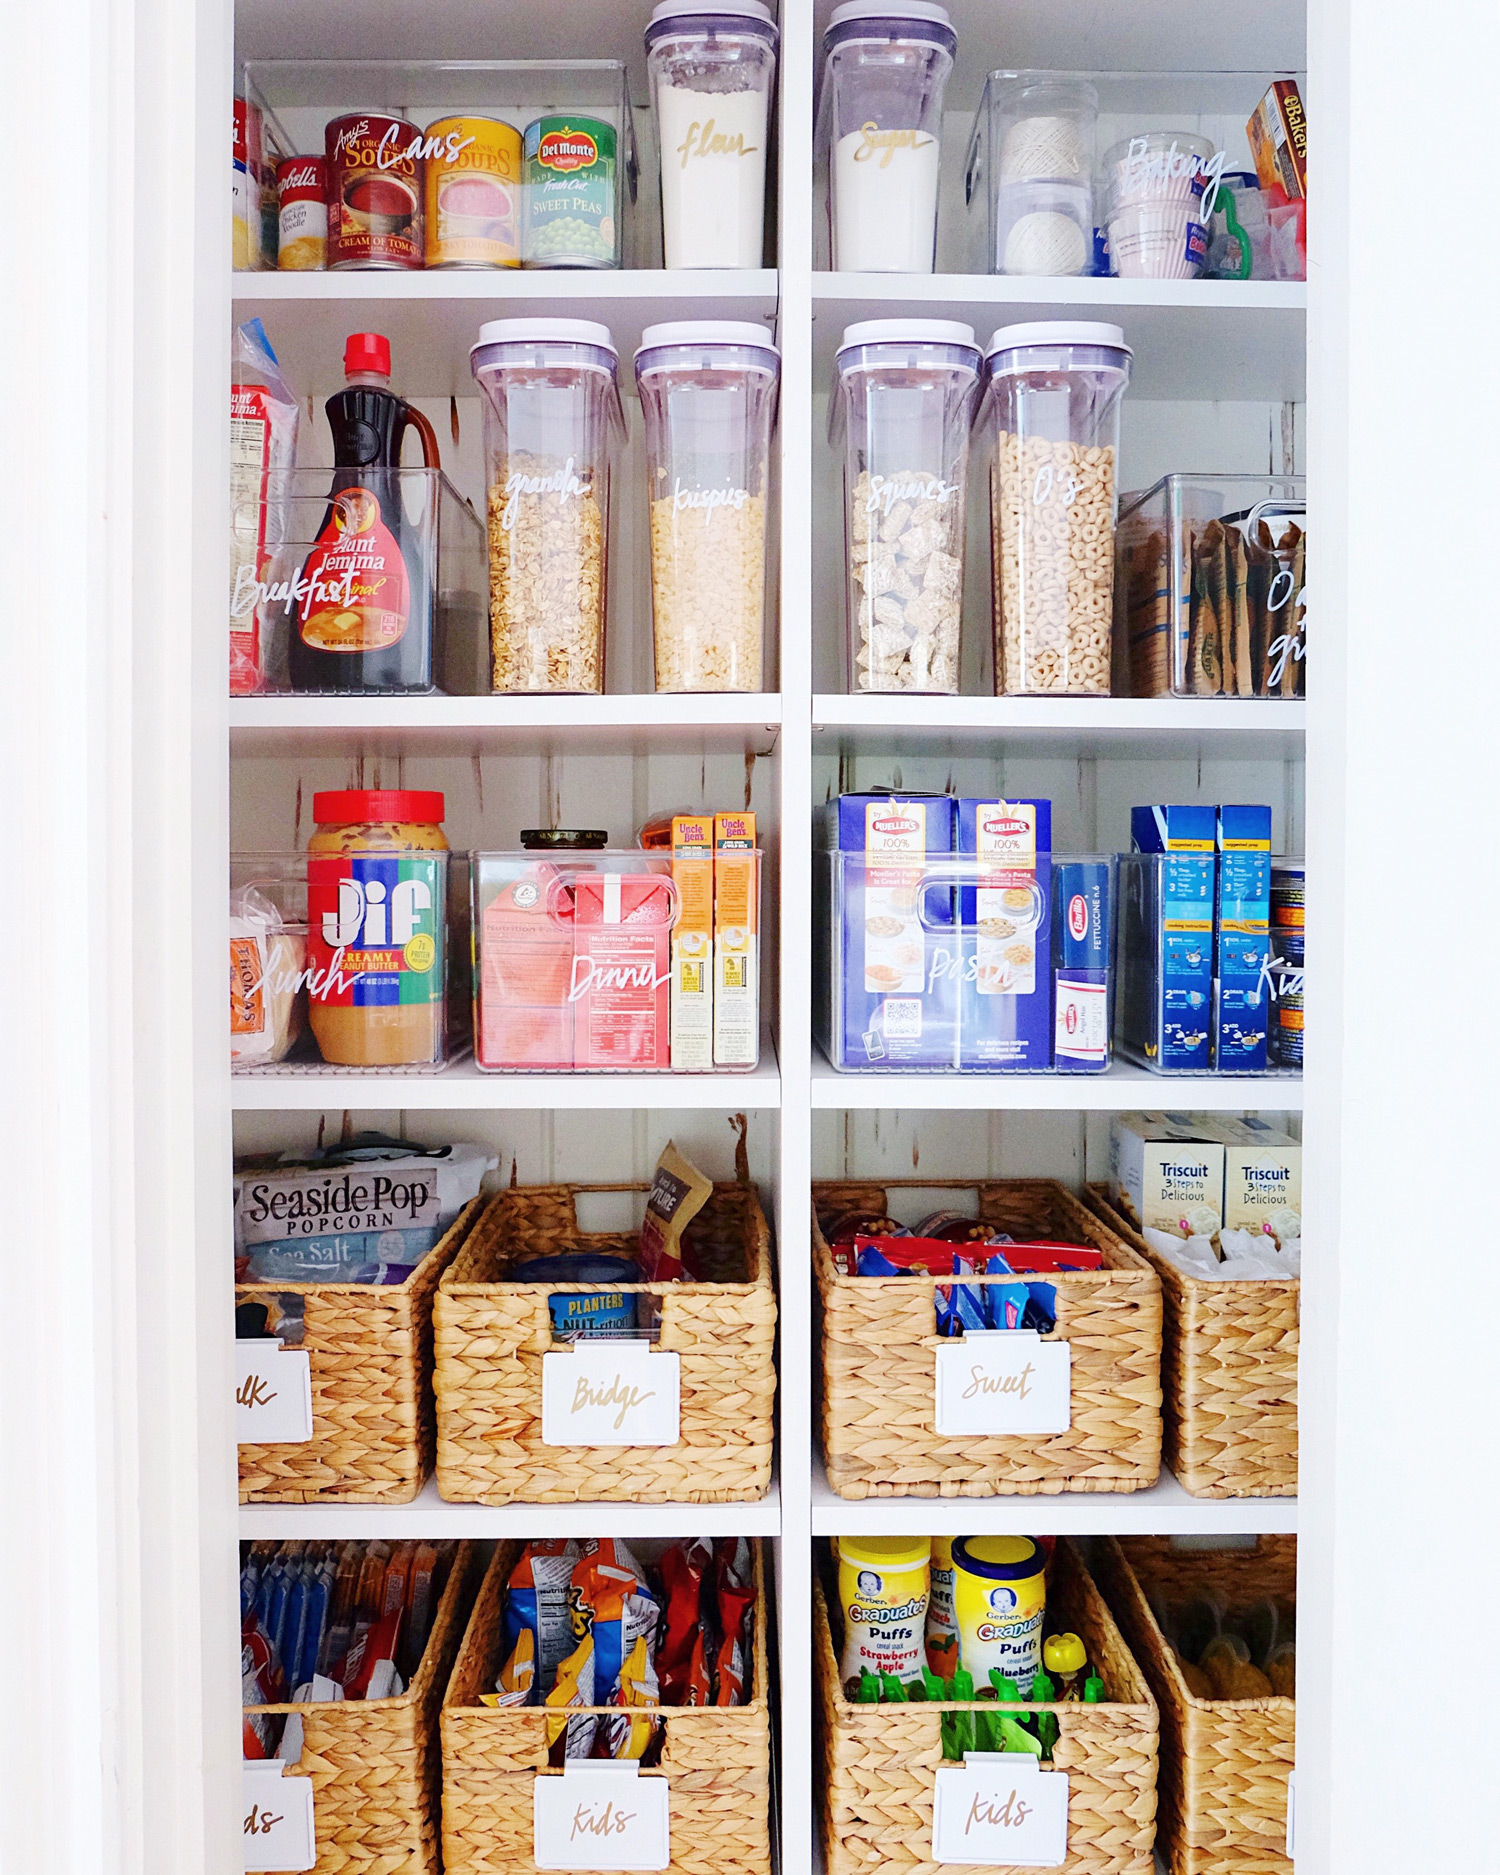 pantry organization baskets of snacks